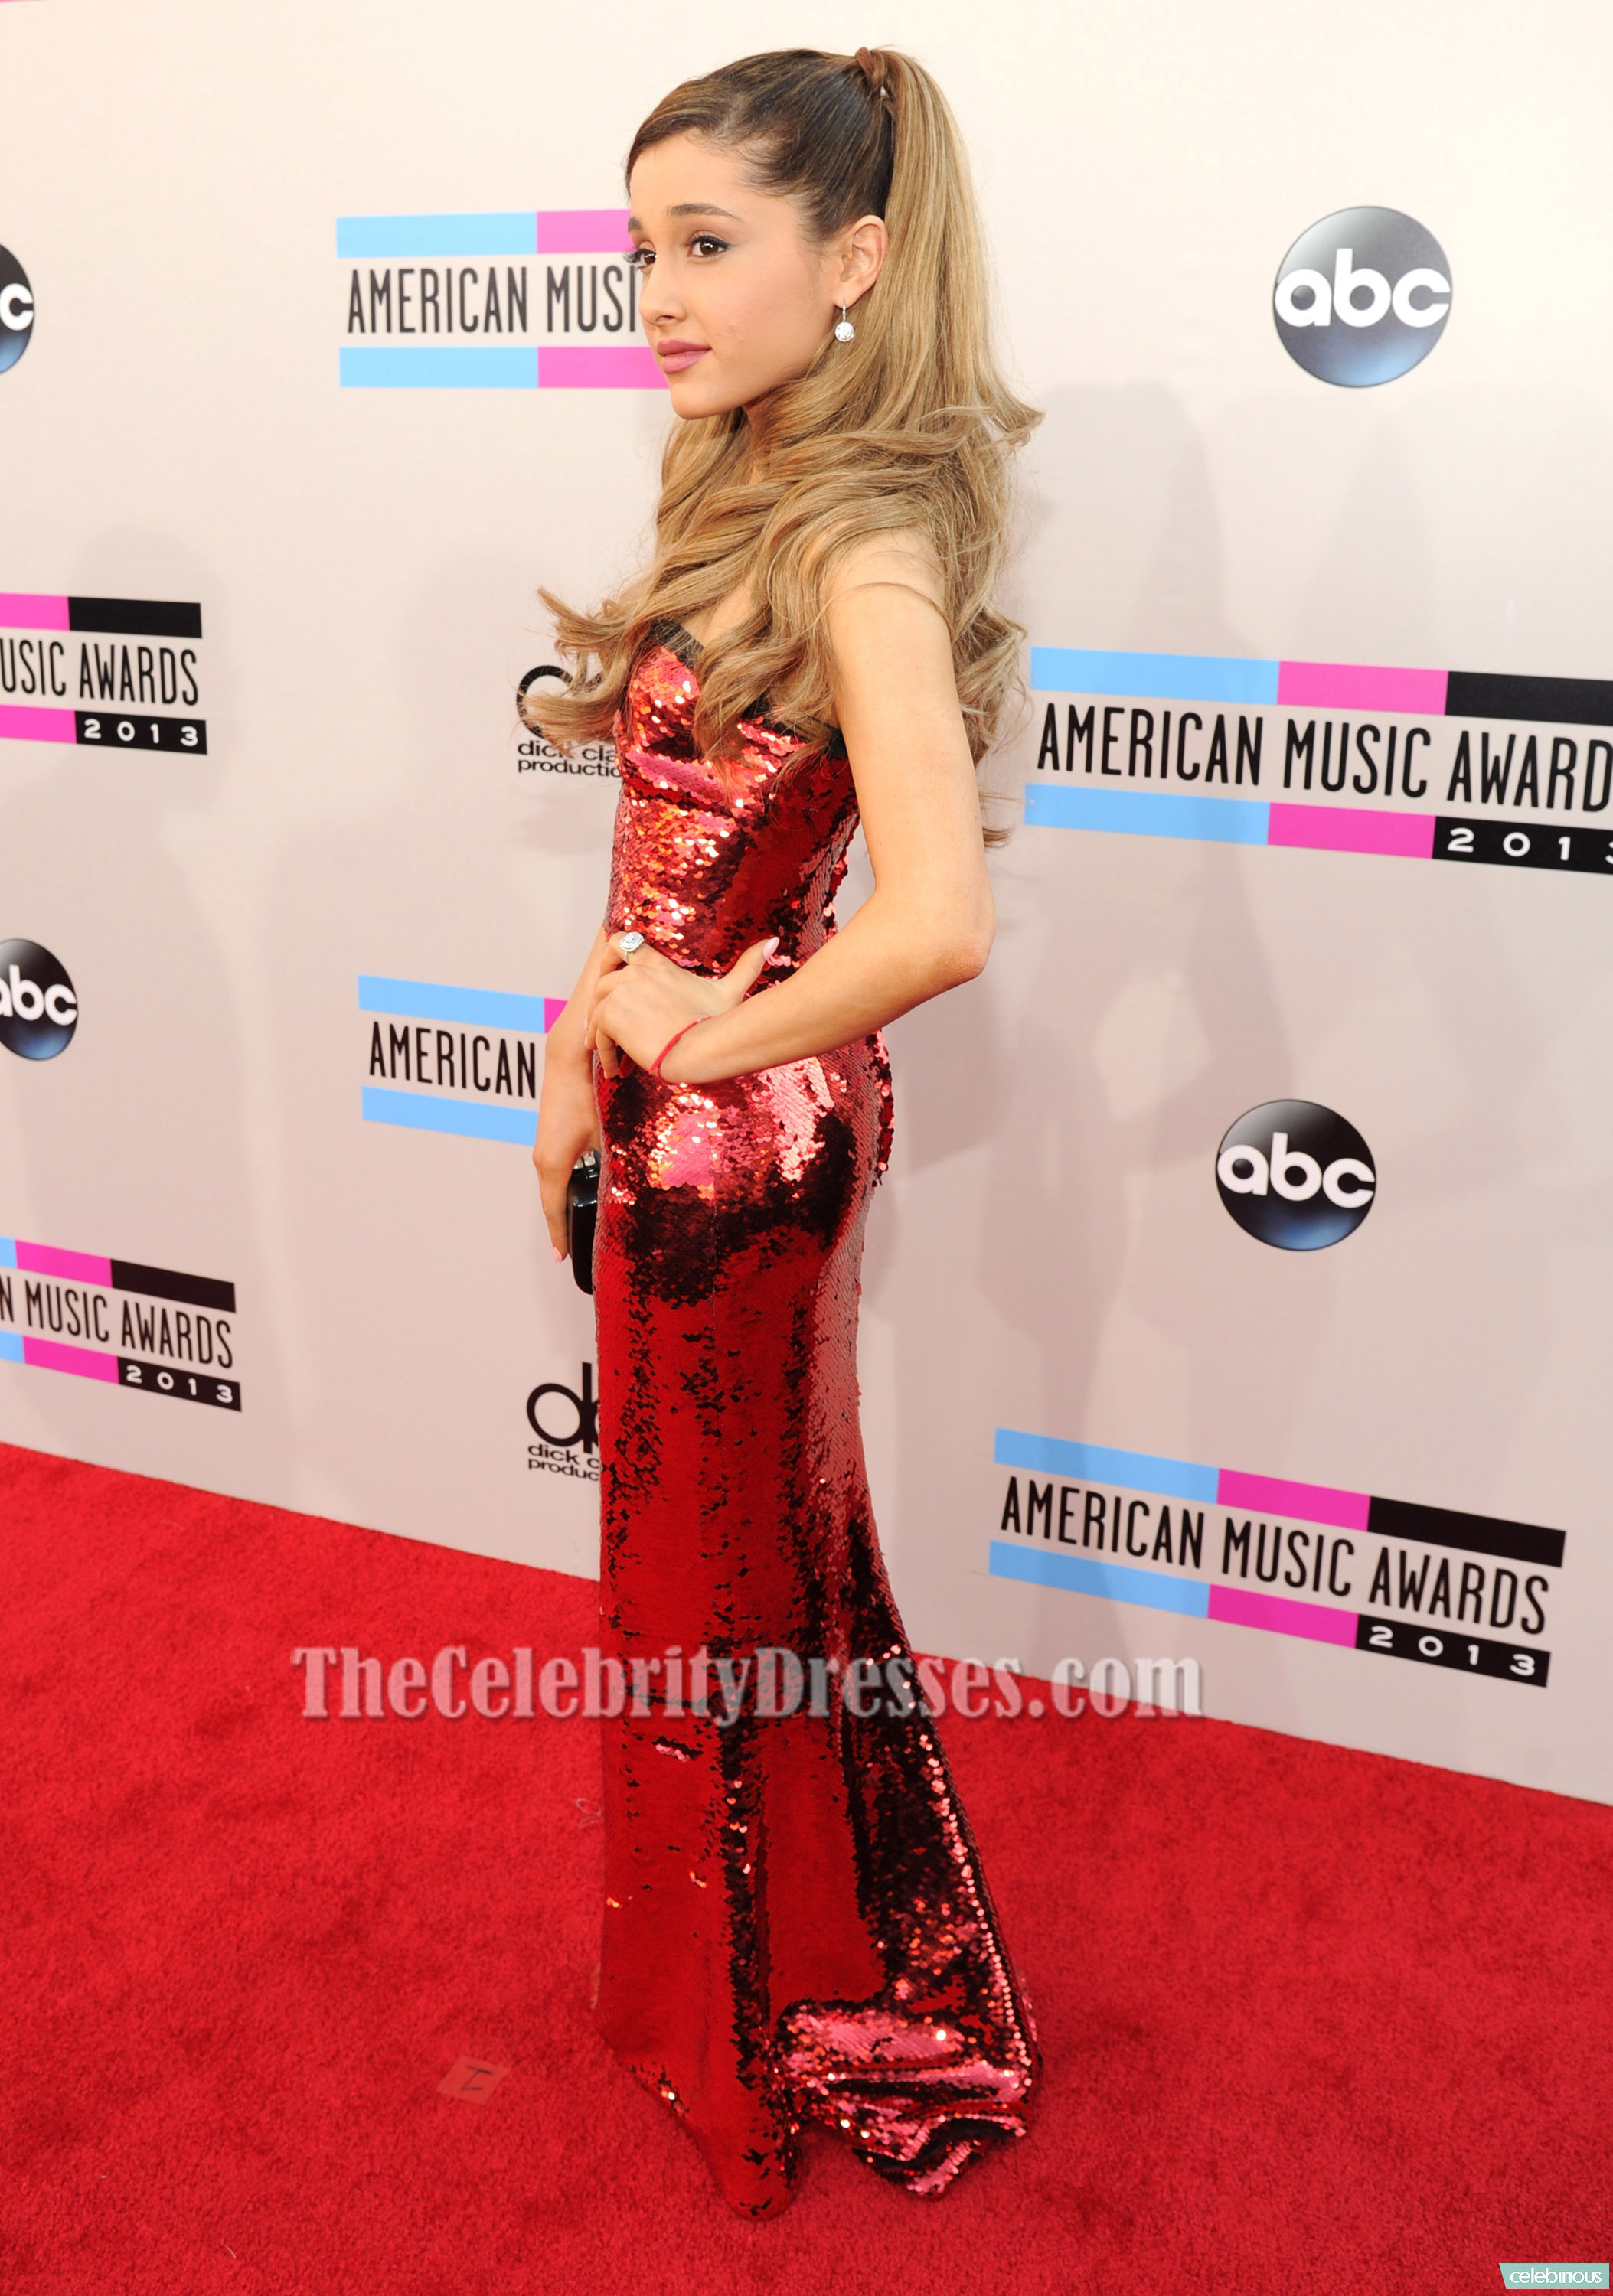 ariana grande red sequined evening dress 2013 american